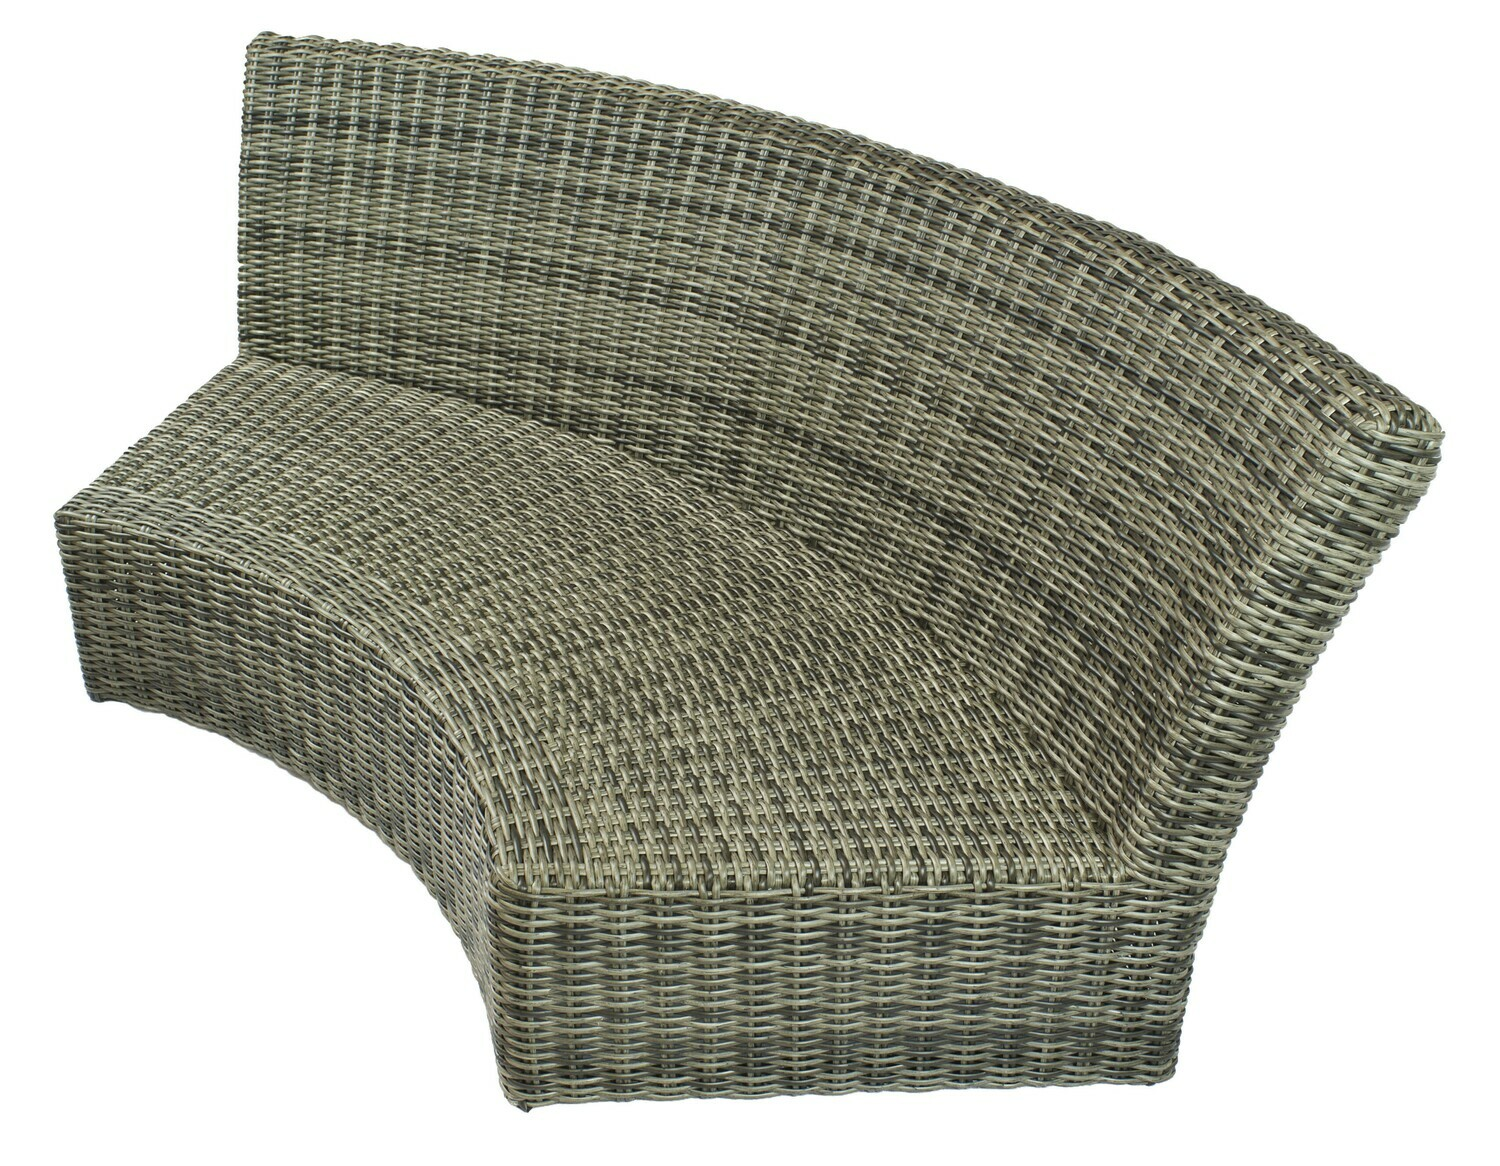 Allegro Wicker Collection Curved Sofa Section